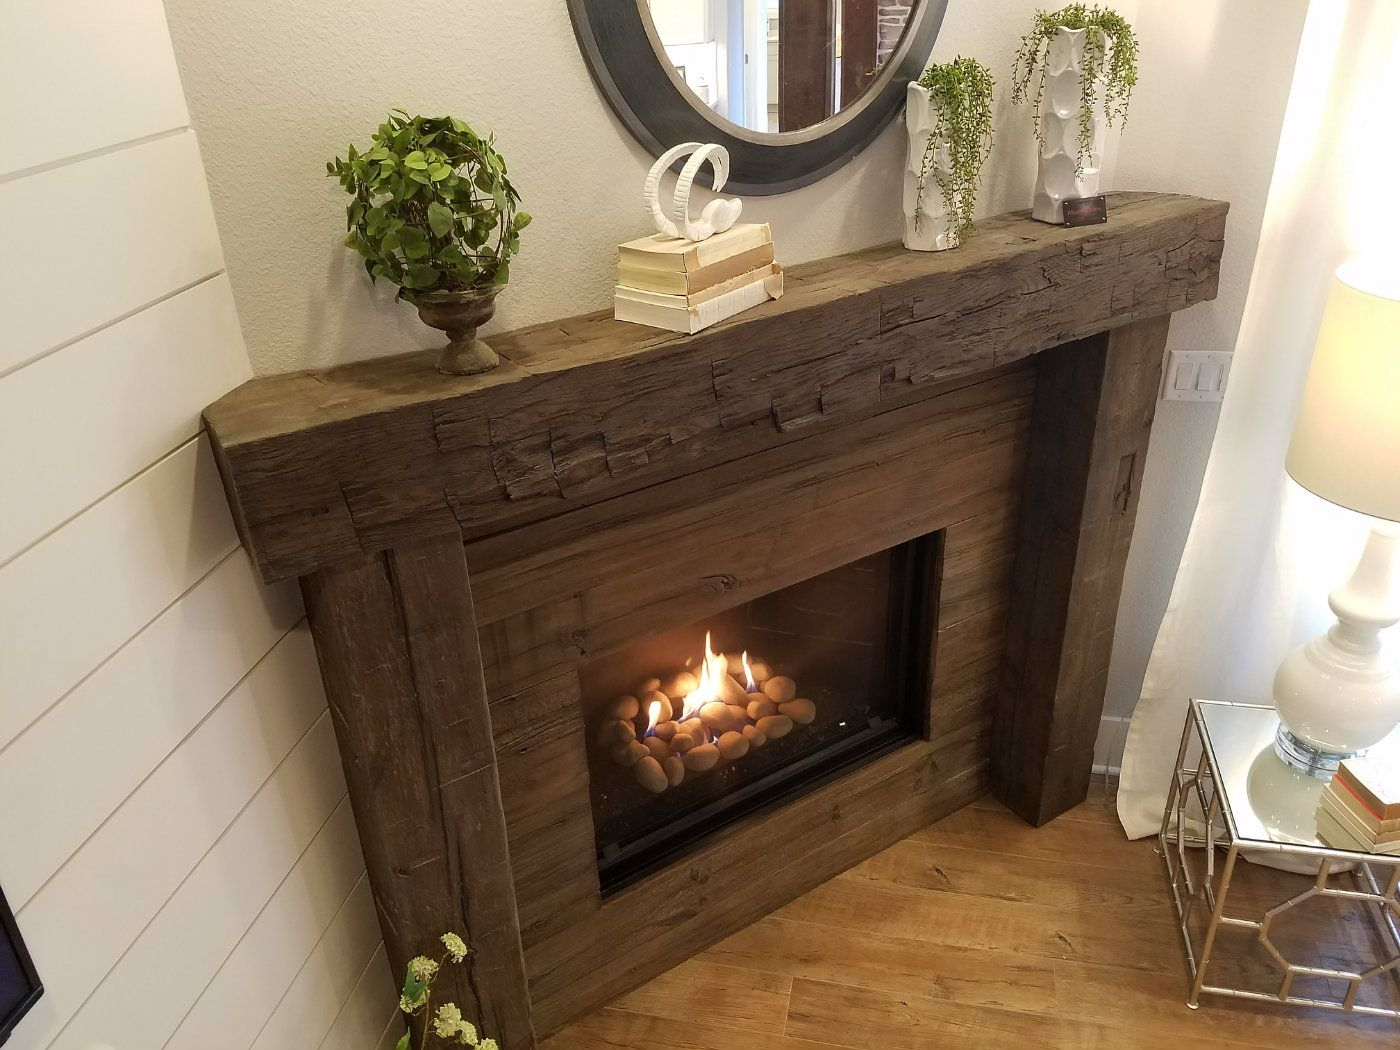 Magrahearth Non Combustible Fireplace Mantels Wood Stone